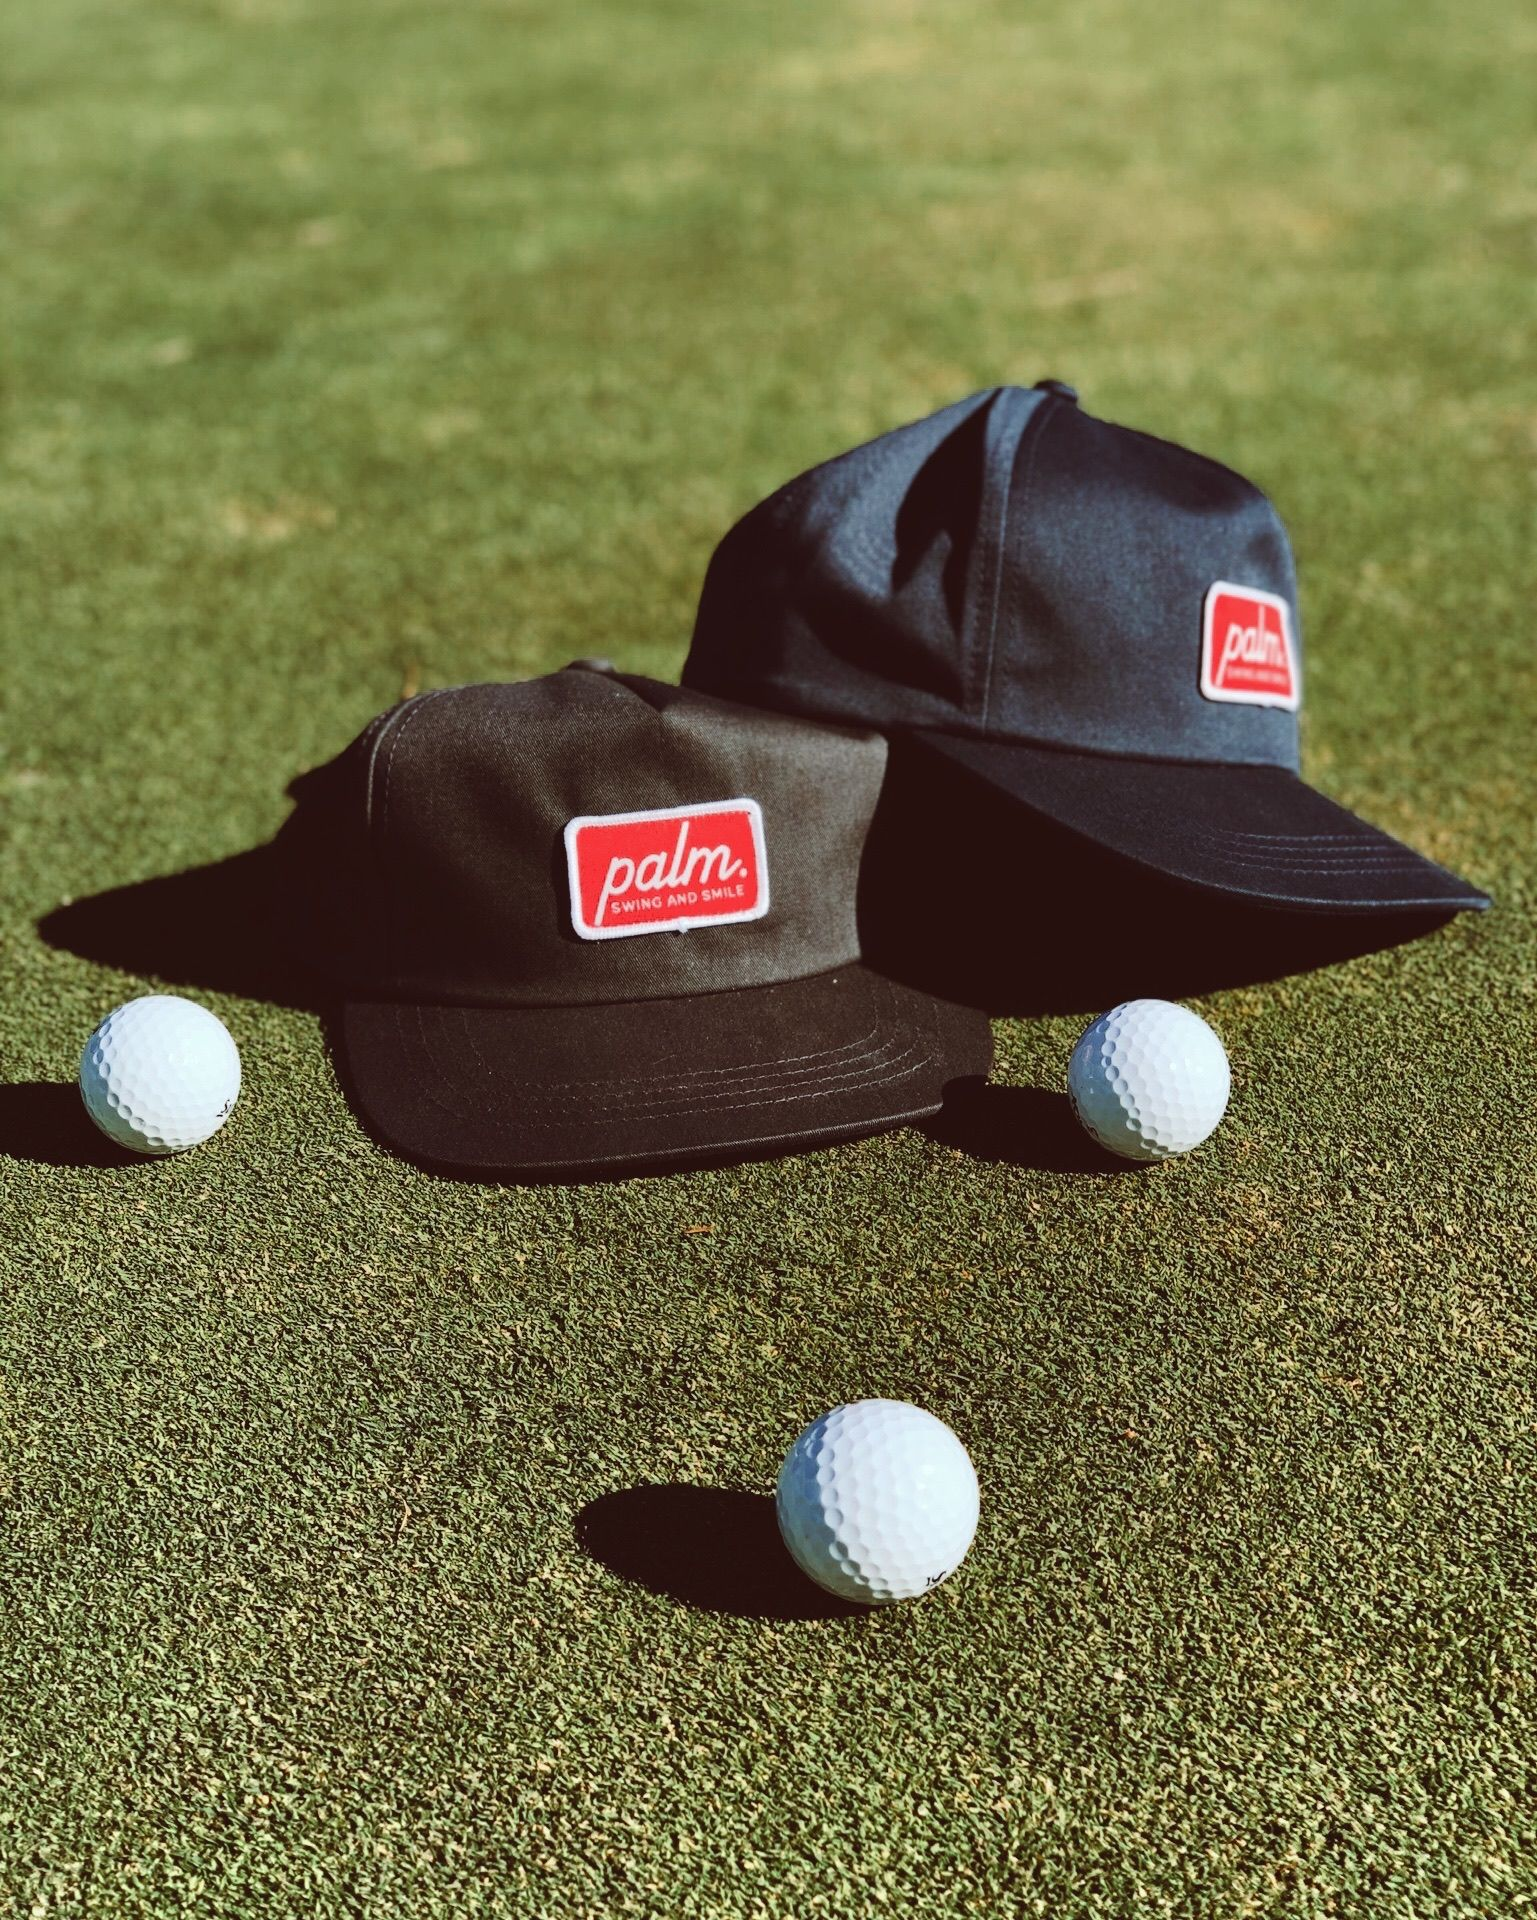 The Roadie is our mid-crown, high style snap-back hat for the course